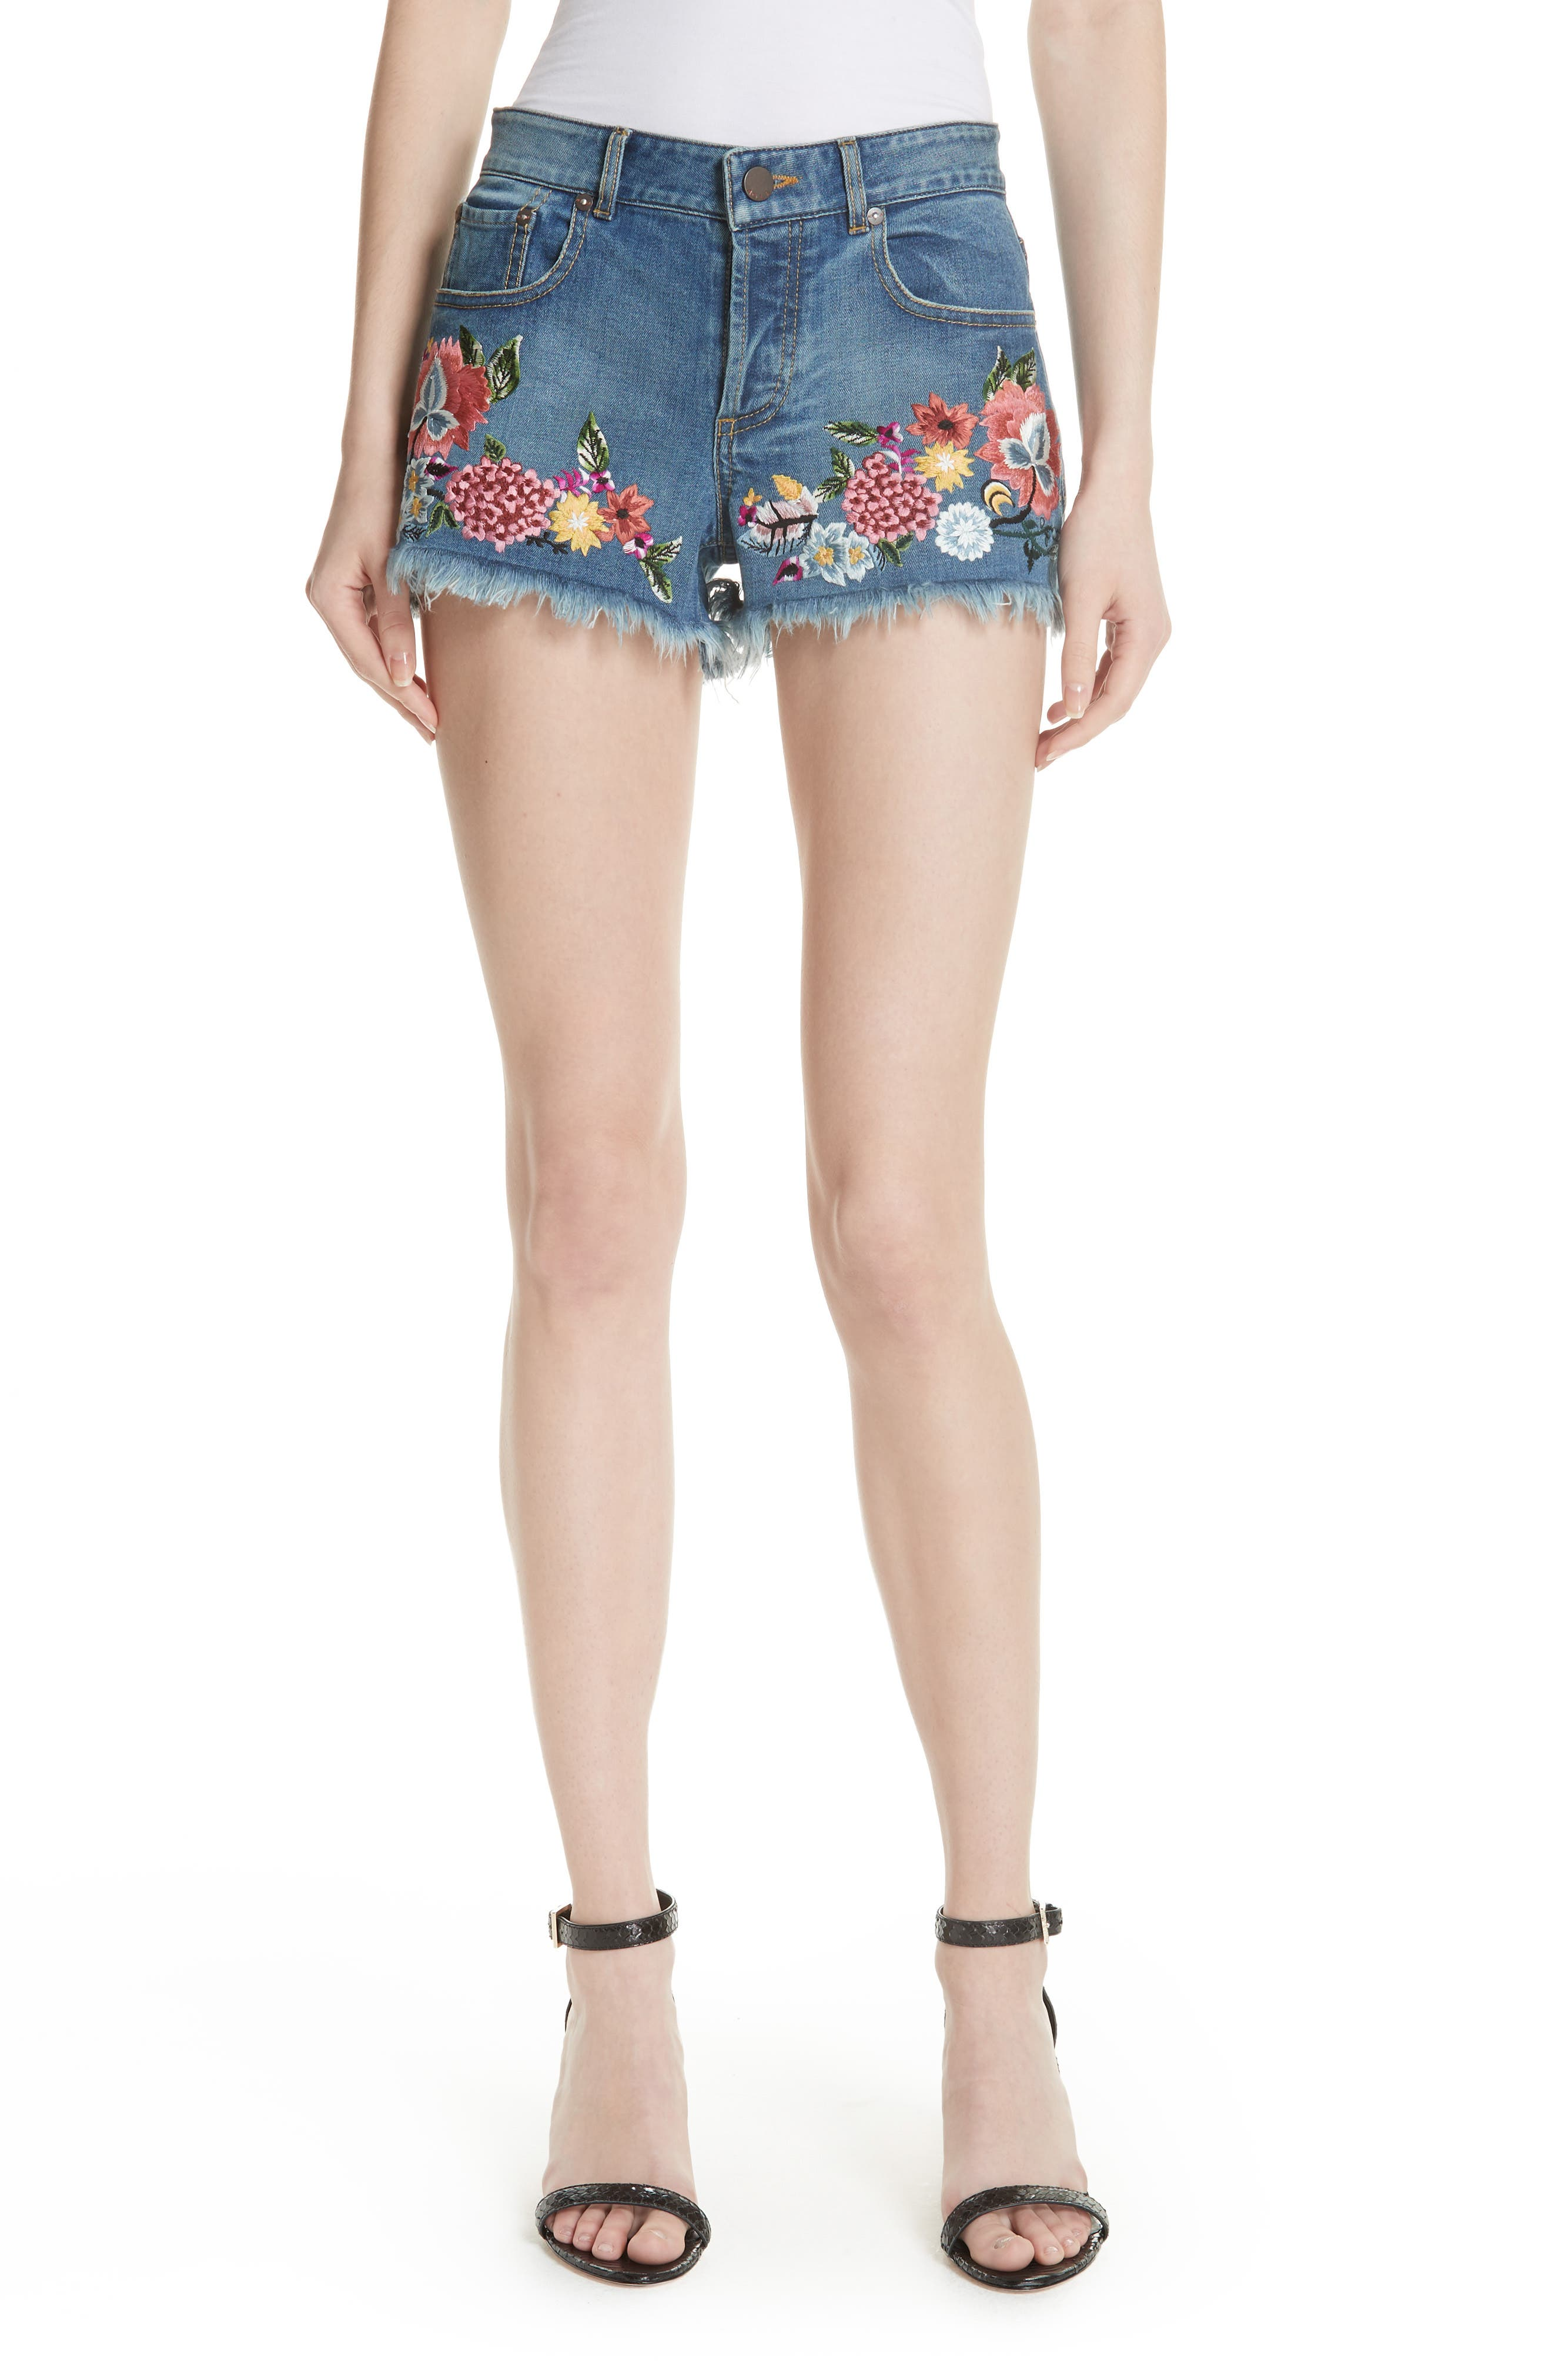 ALICE + OLIVIA JEANS Embroidered Denim Shorts, Main, color, 460